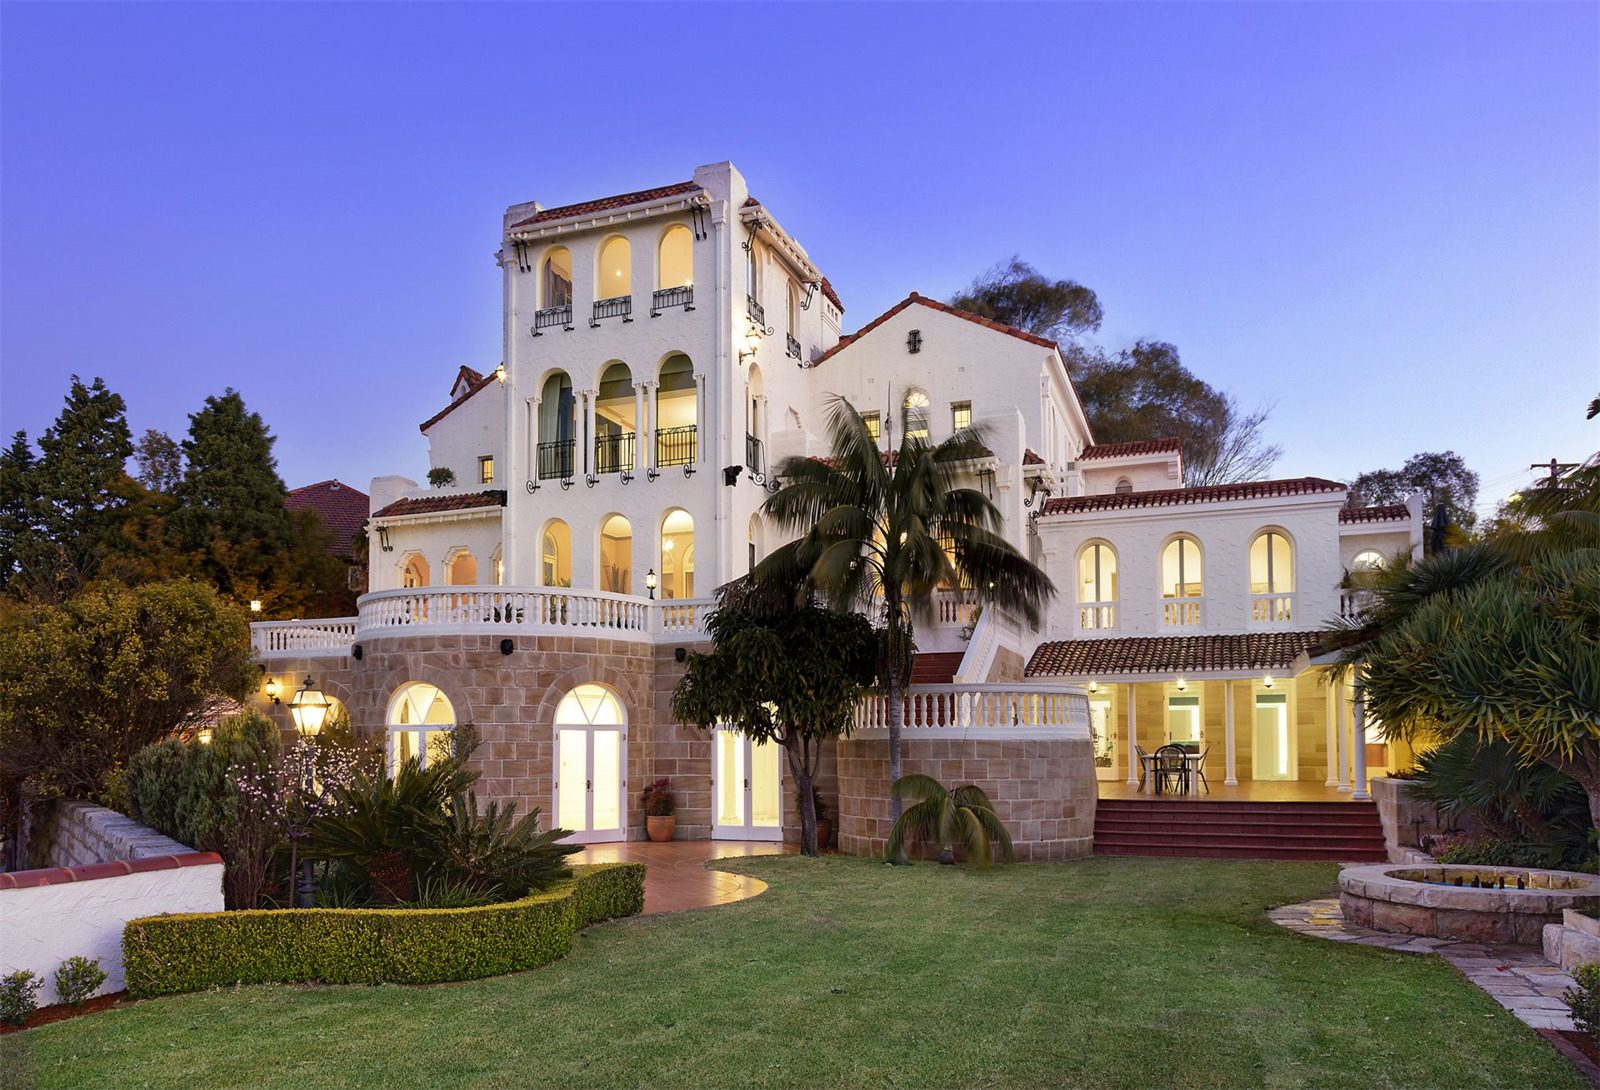 Spanish mission style estate located in New South Wales Australia